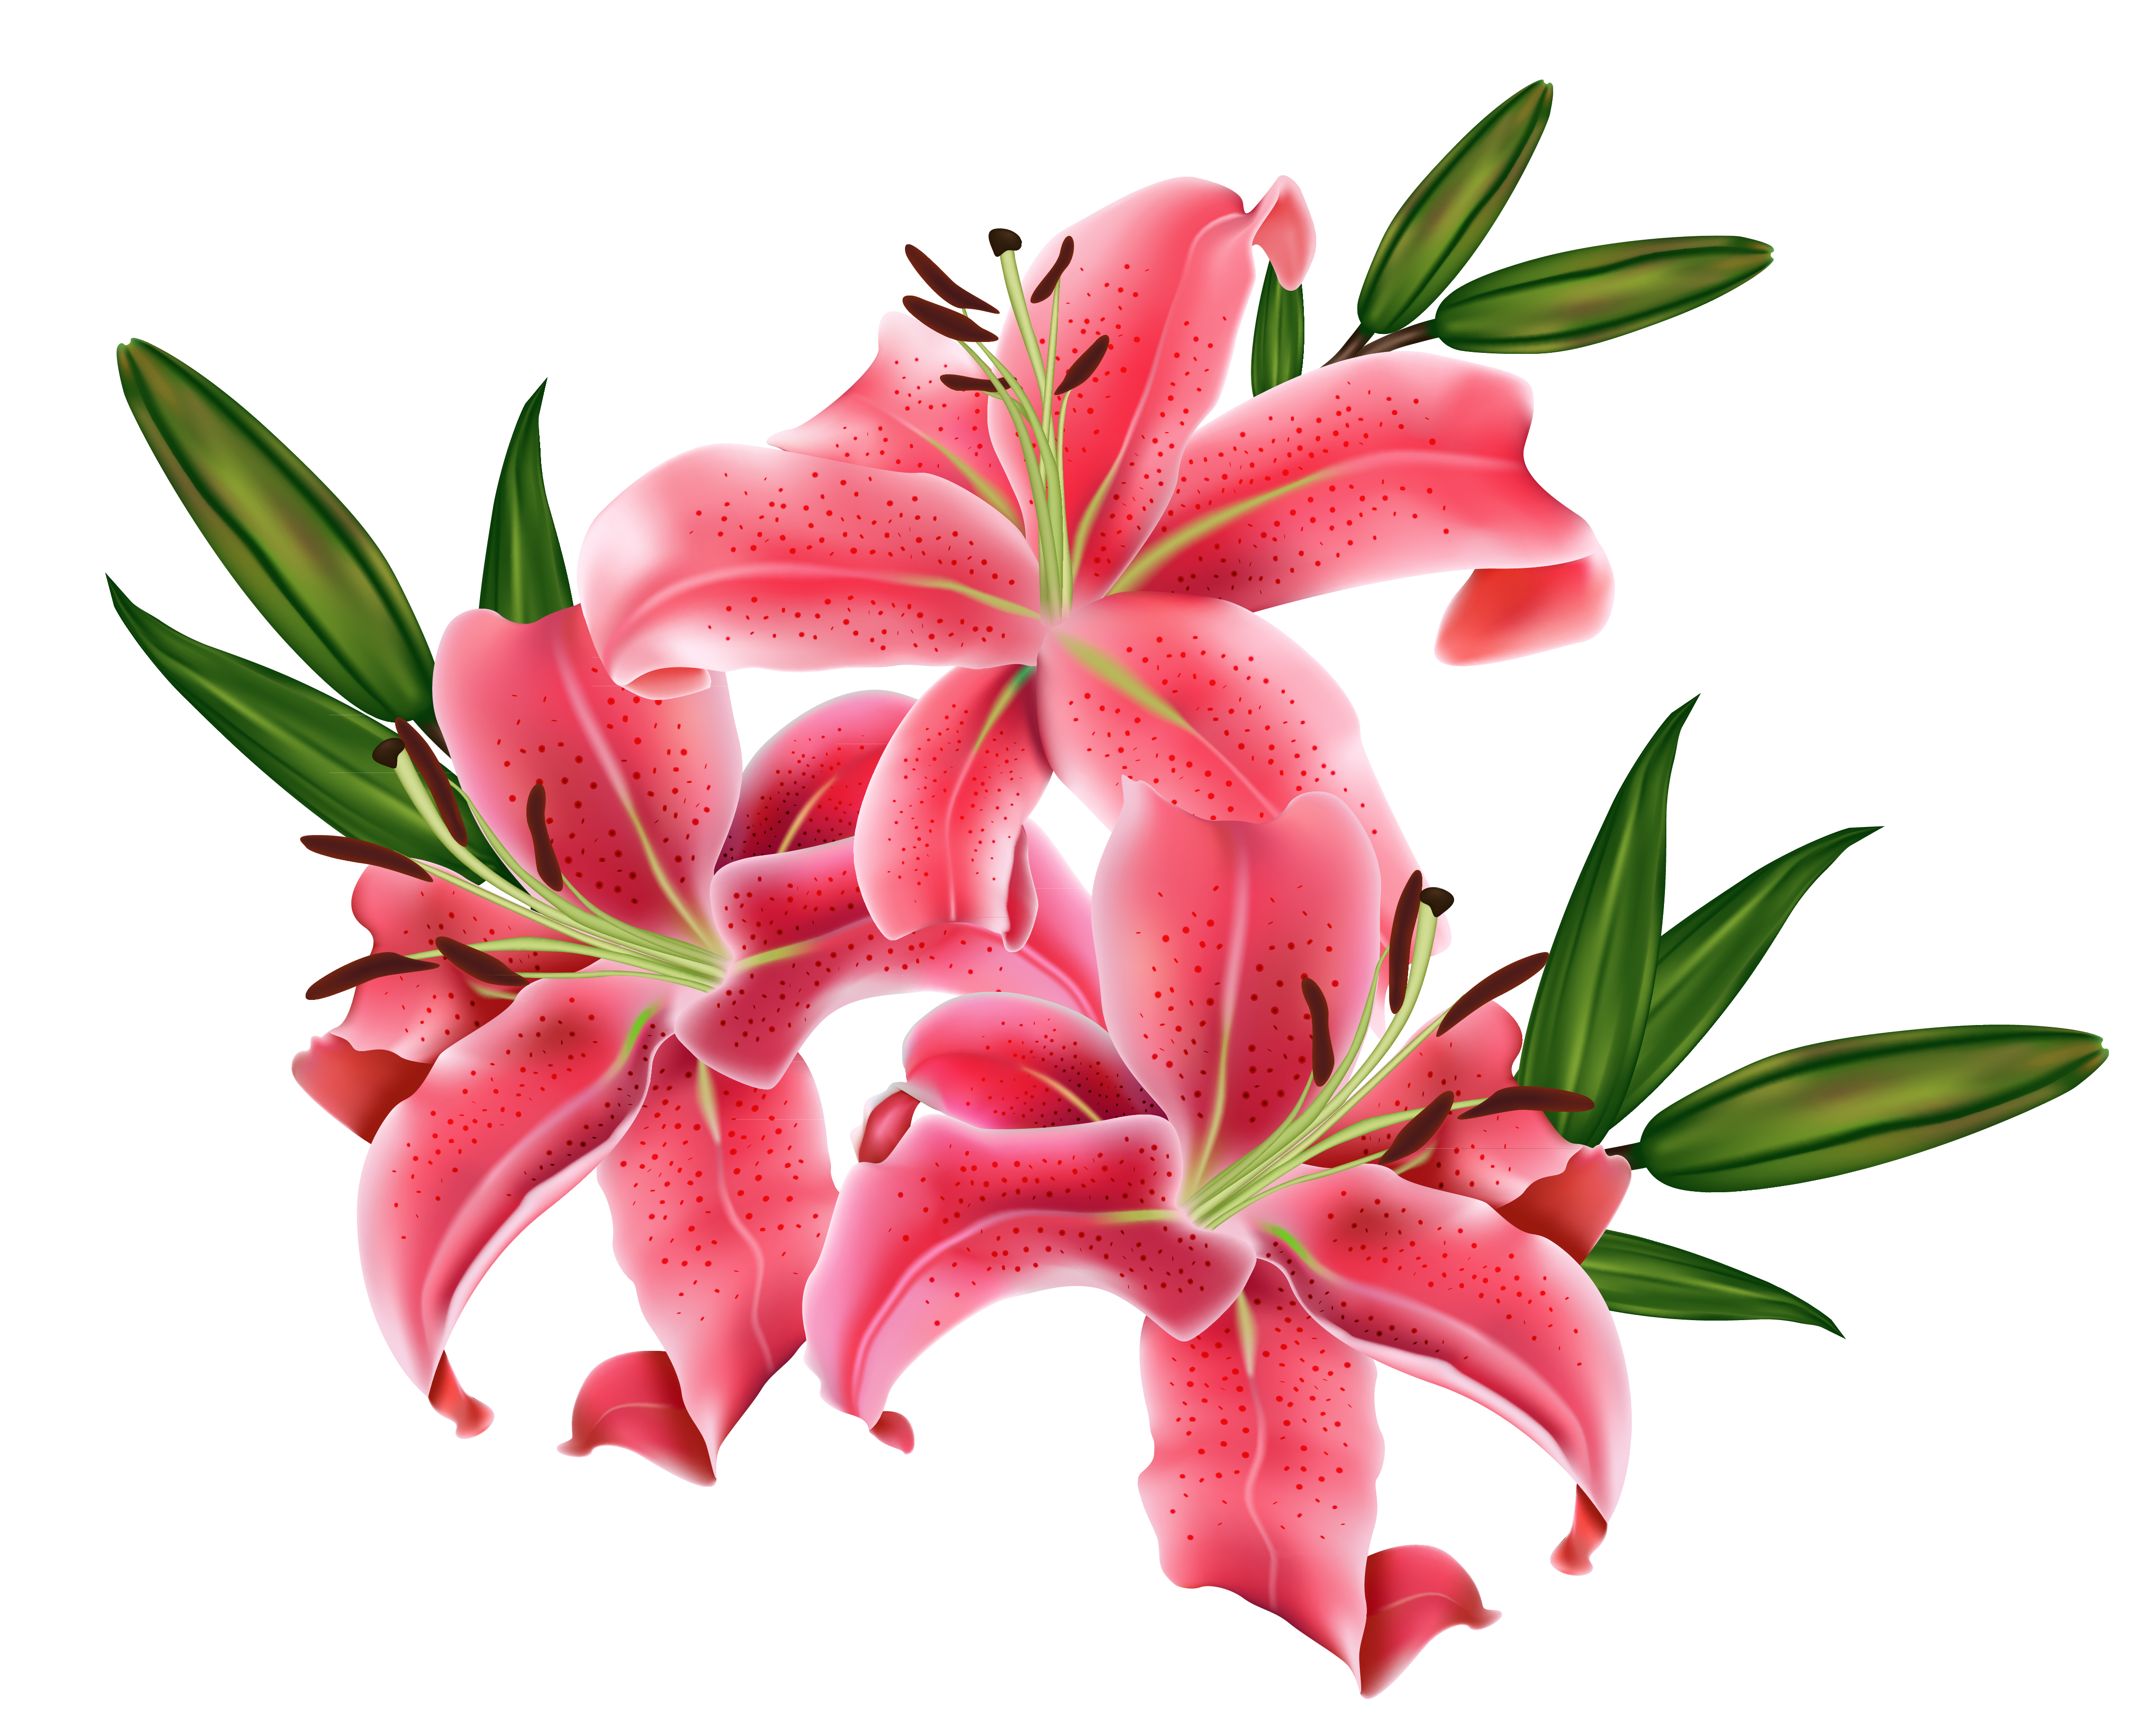 Free star lily clipart clip freeuse clipart lilies clip freeuse